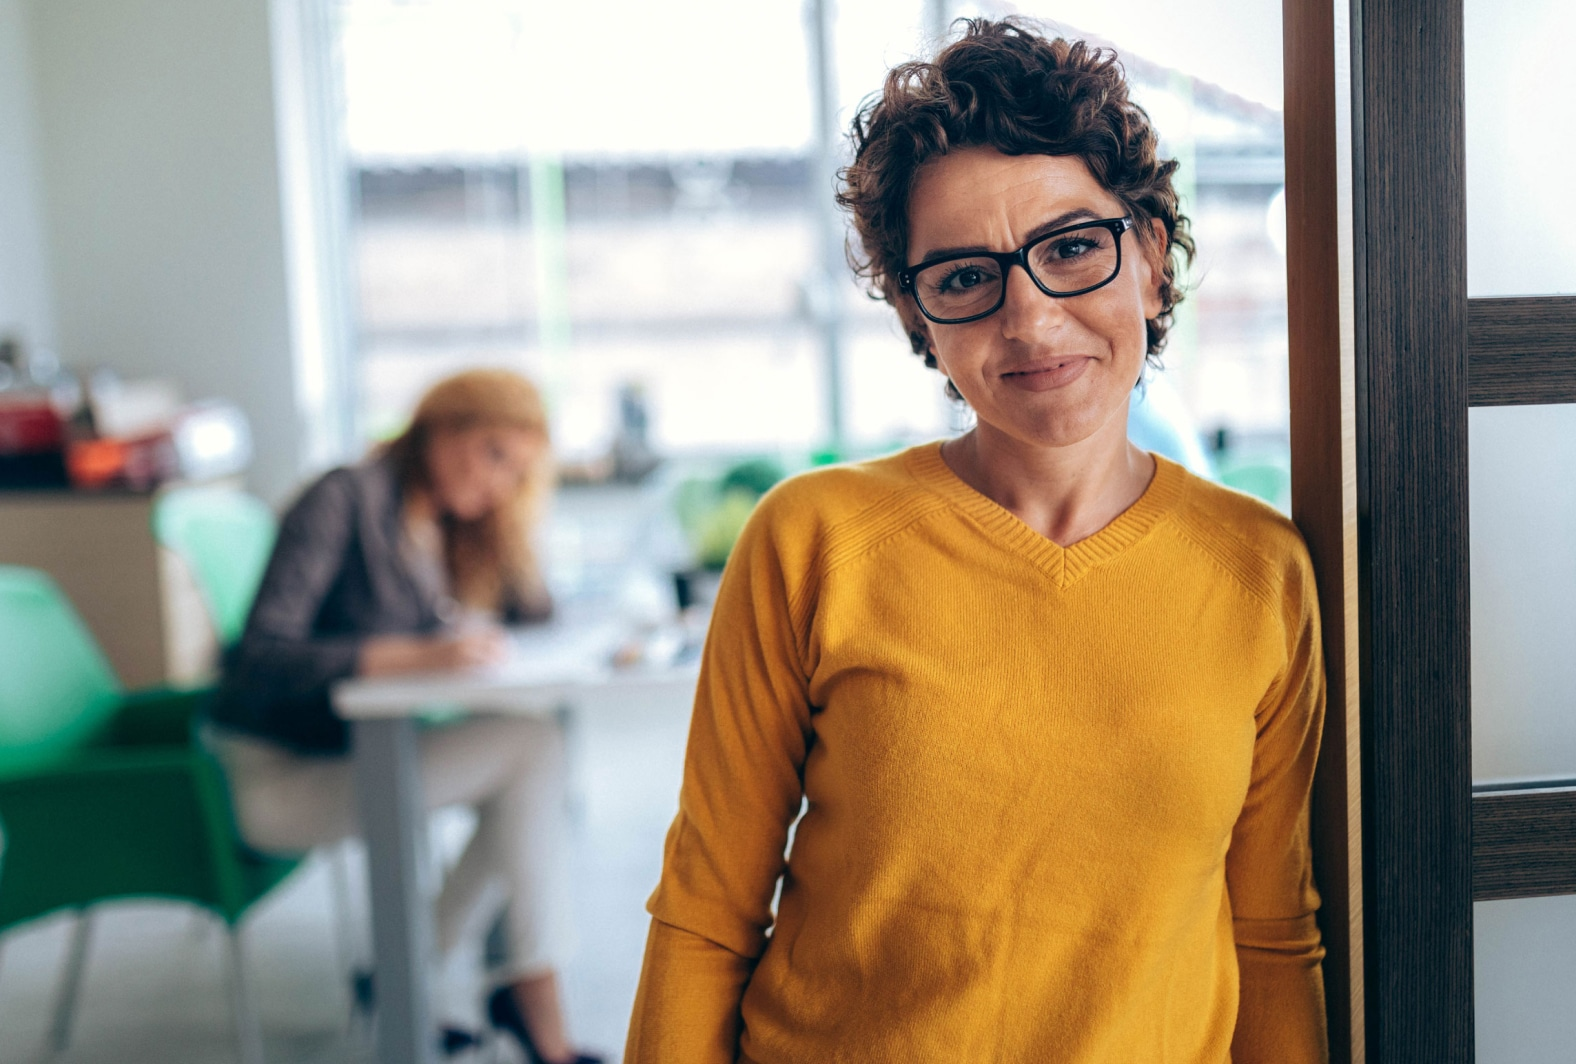 Should personality assessment be used in hiring?